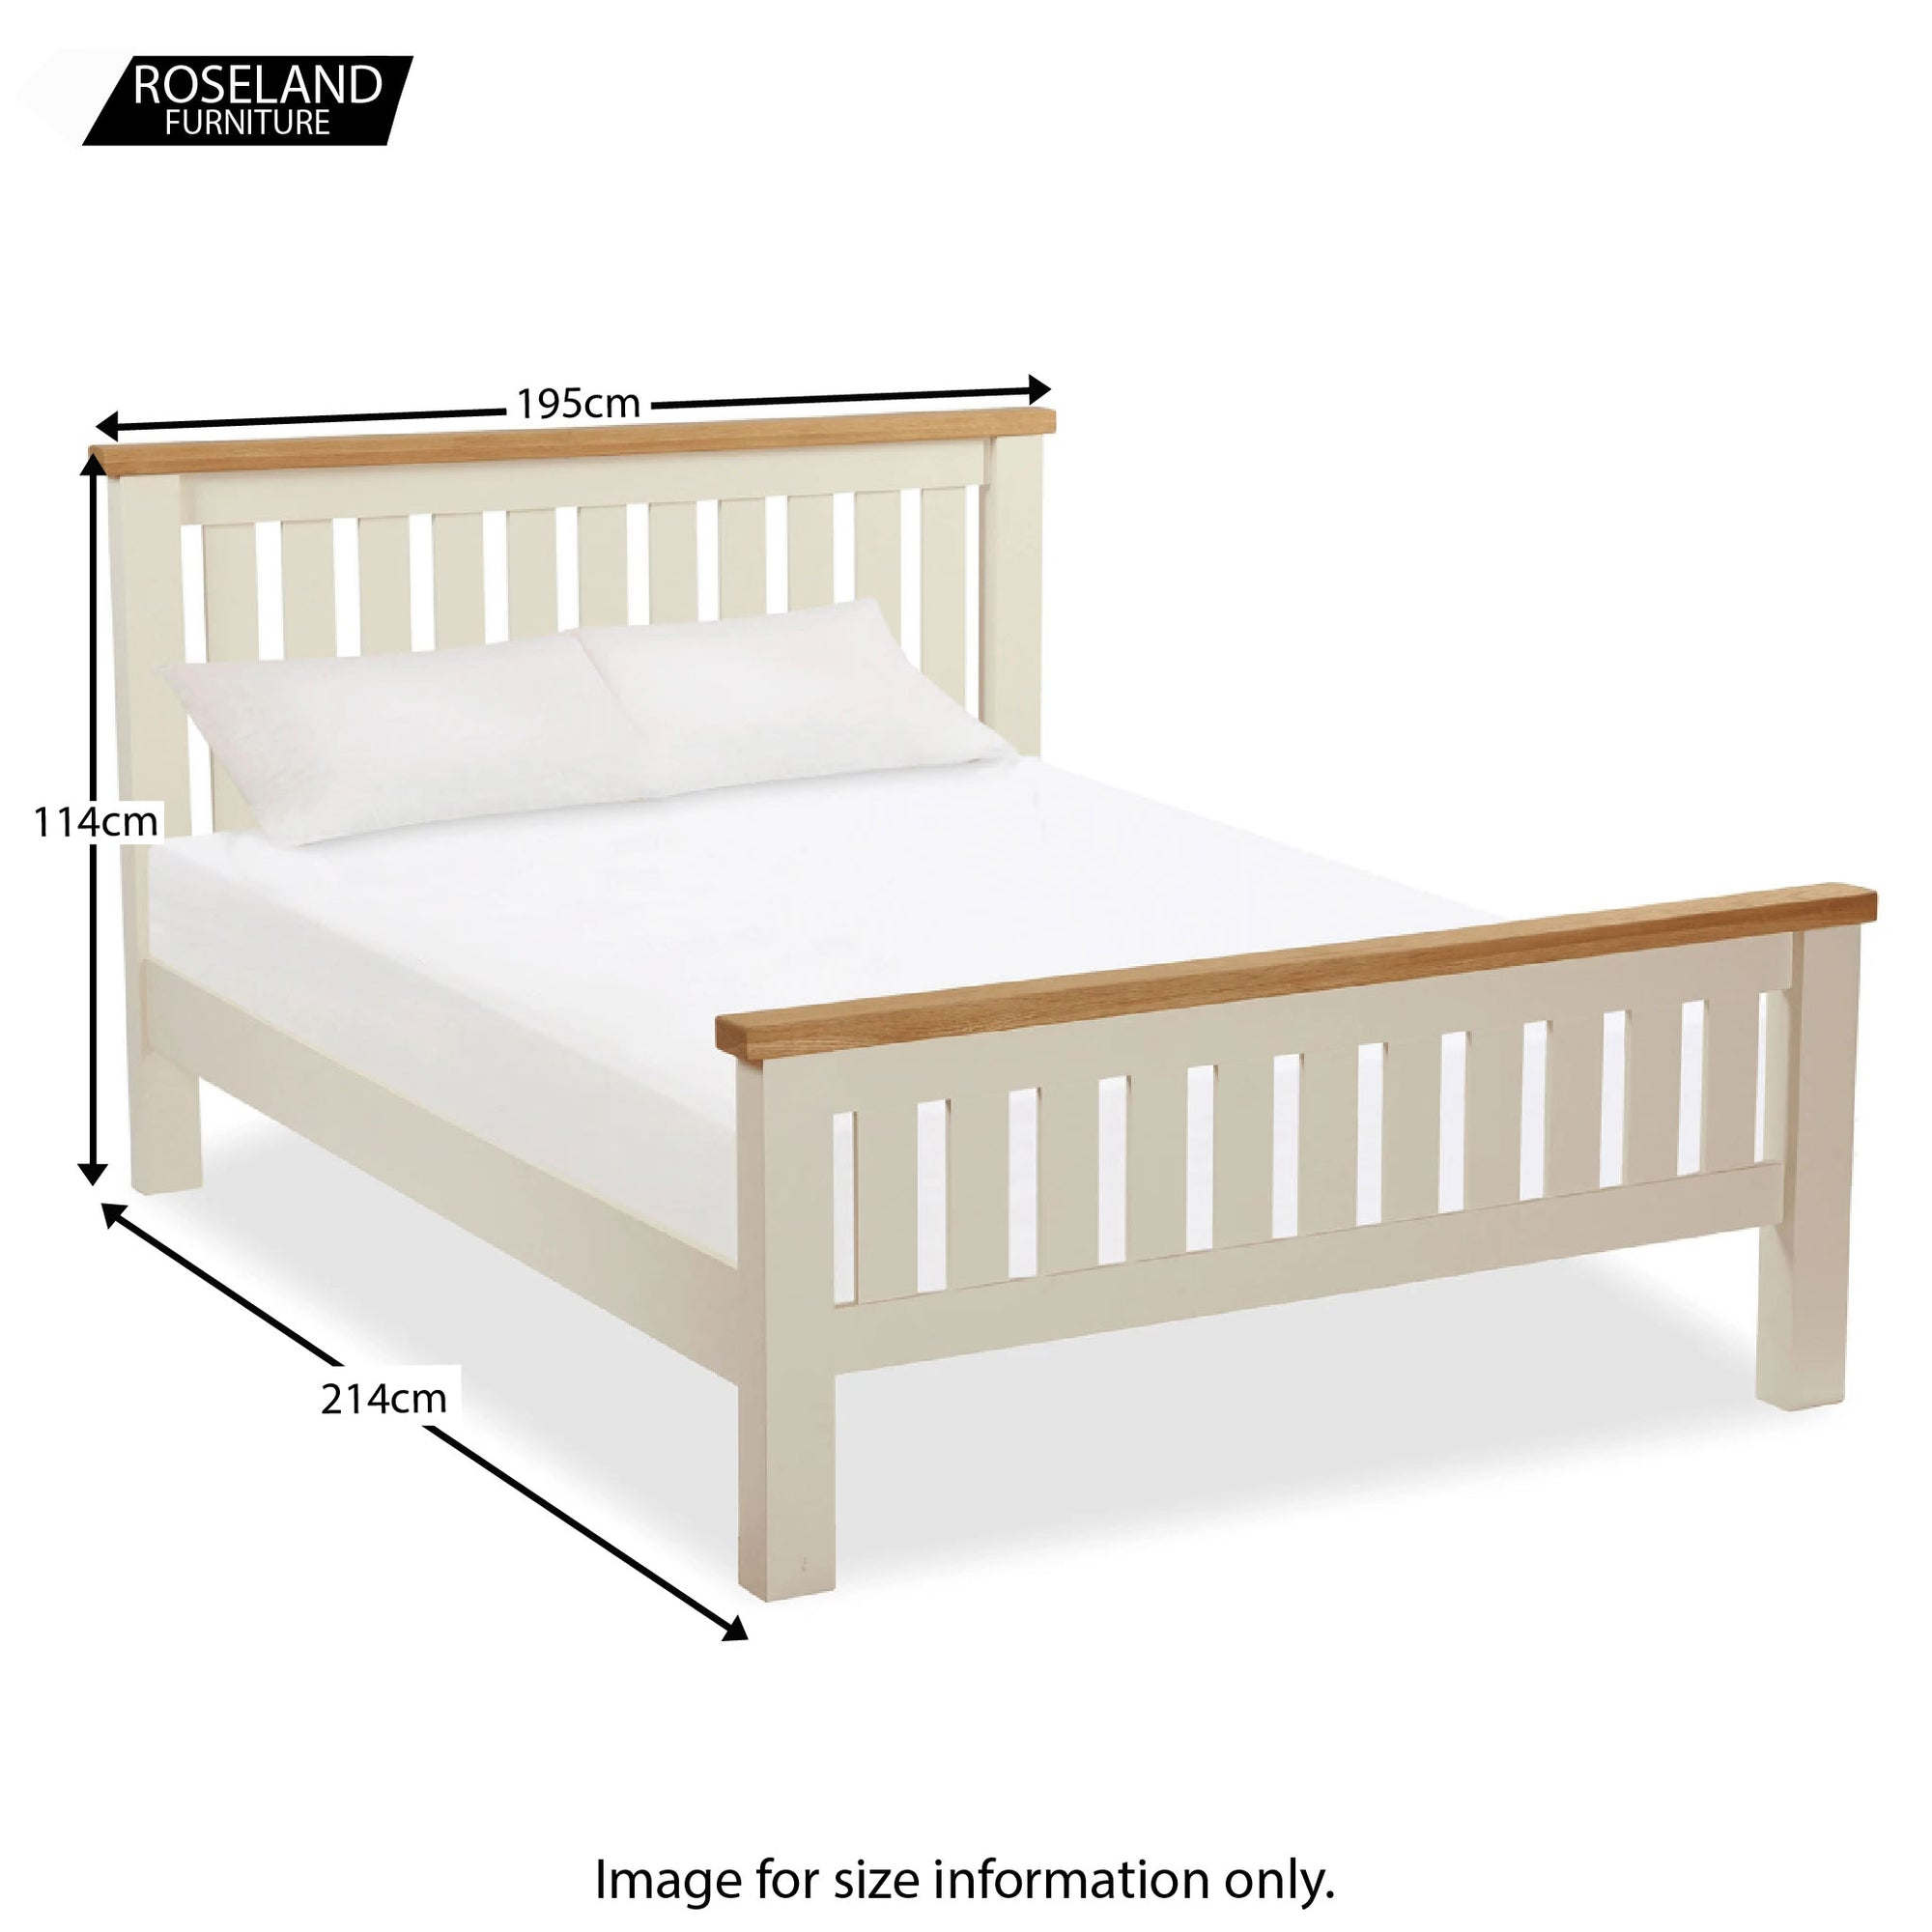 Daymer Cream Painted Oak 6 Ft Super King Bed Solid Wood Frame Roseland Furniture